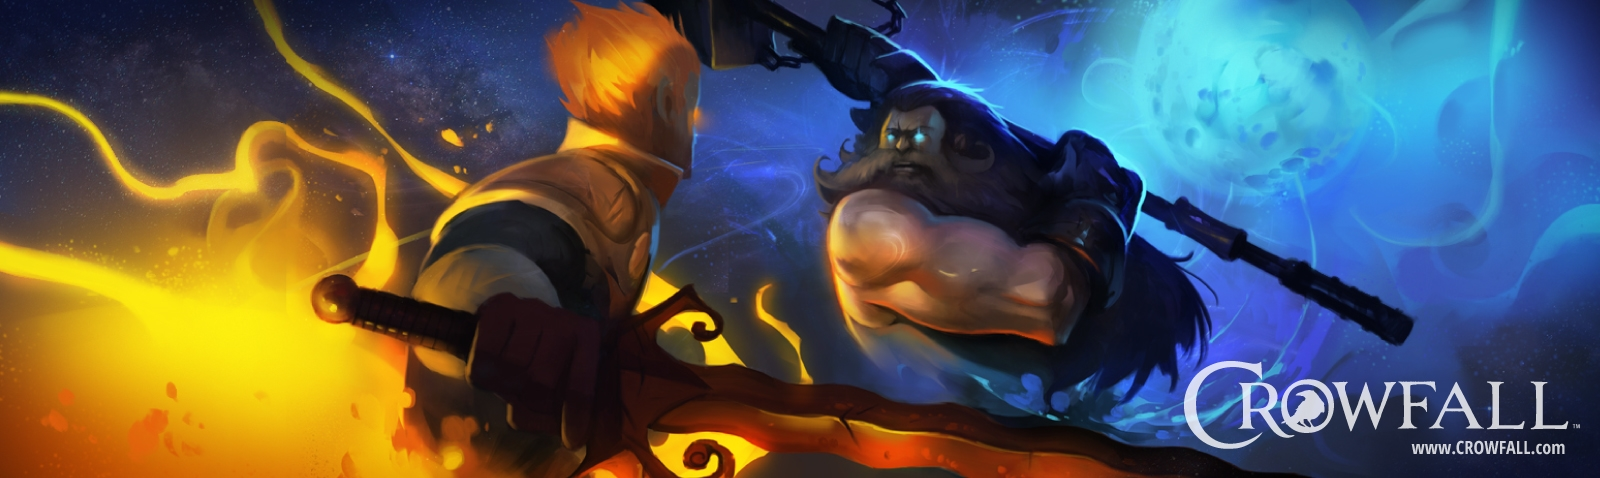 High-Flying Kickstarter Project Crowfall Opens Game Servers in Europe news header